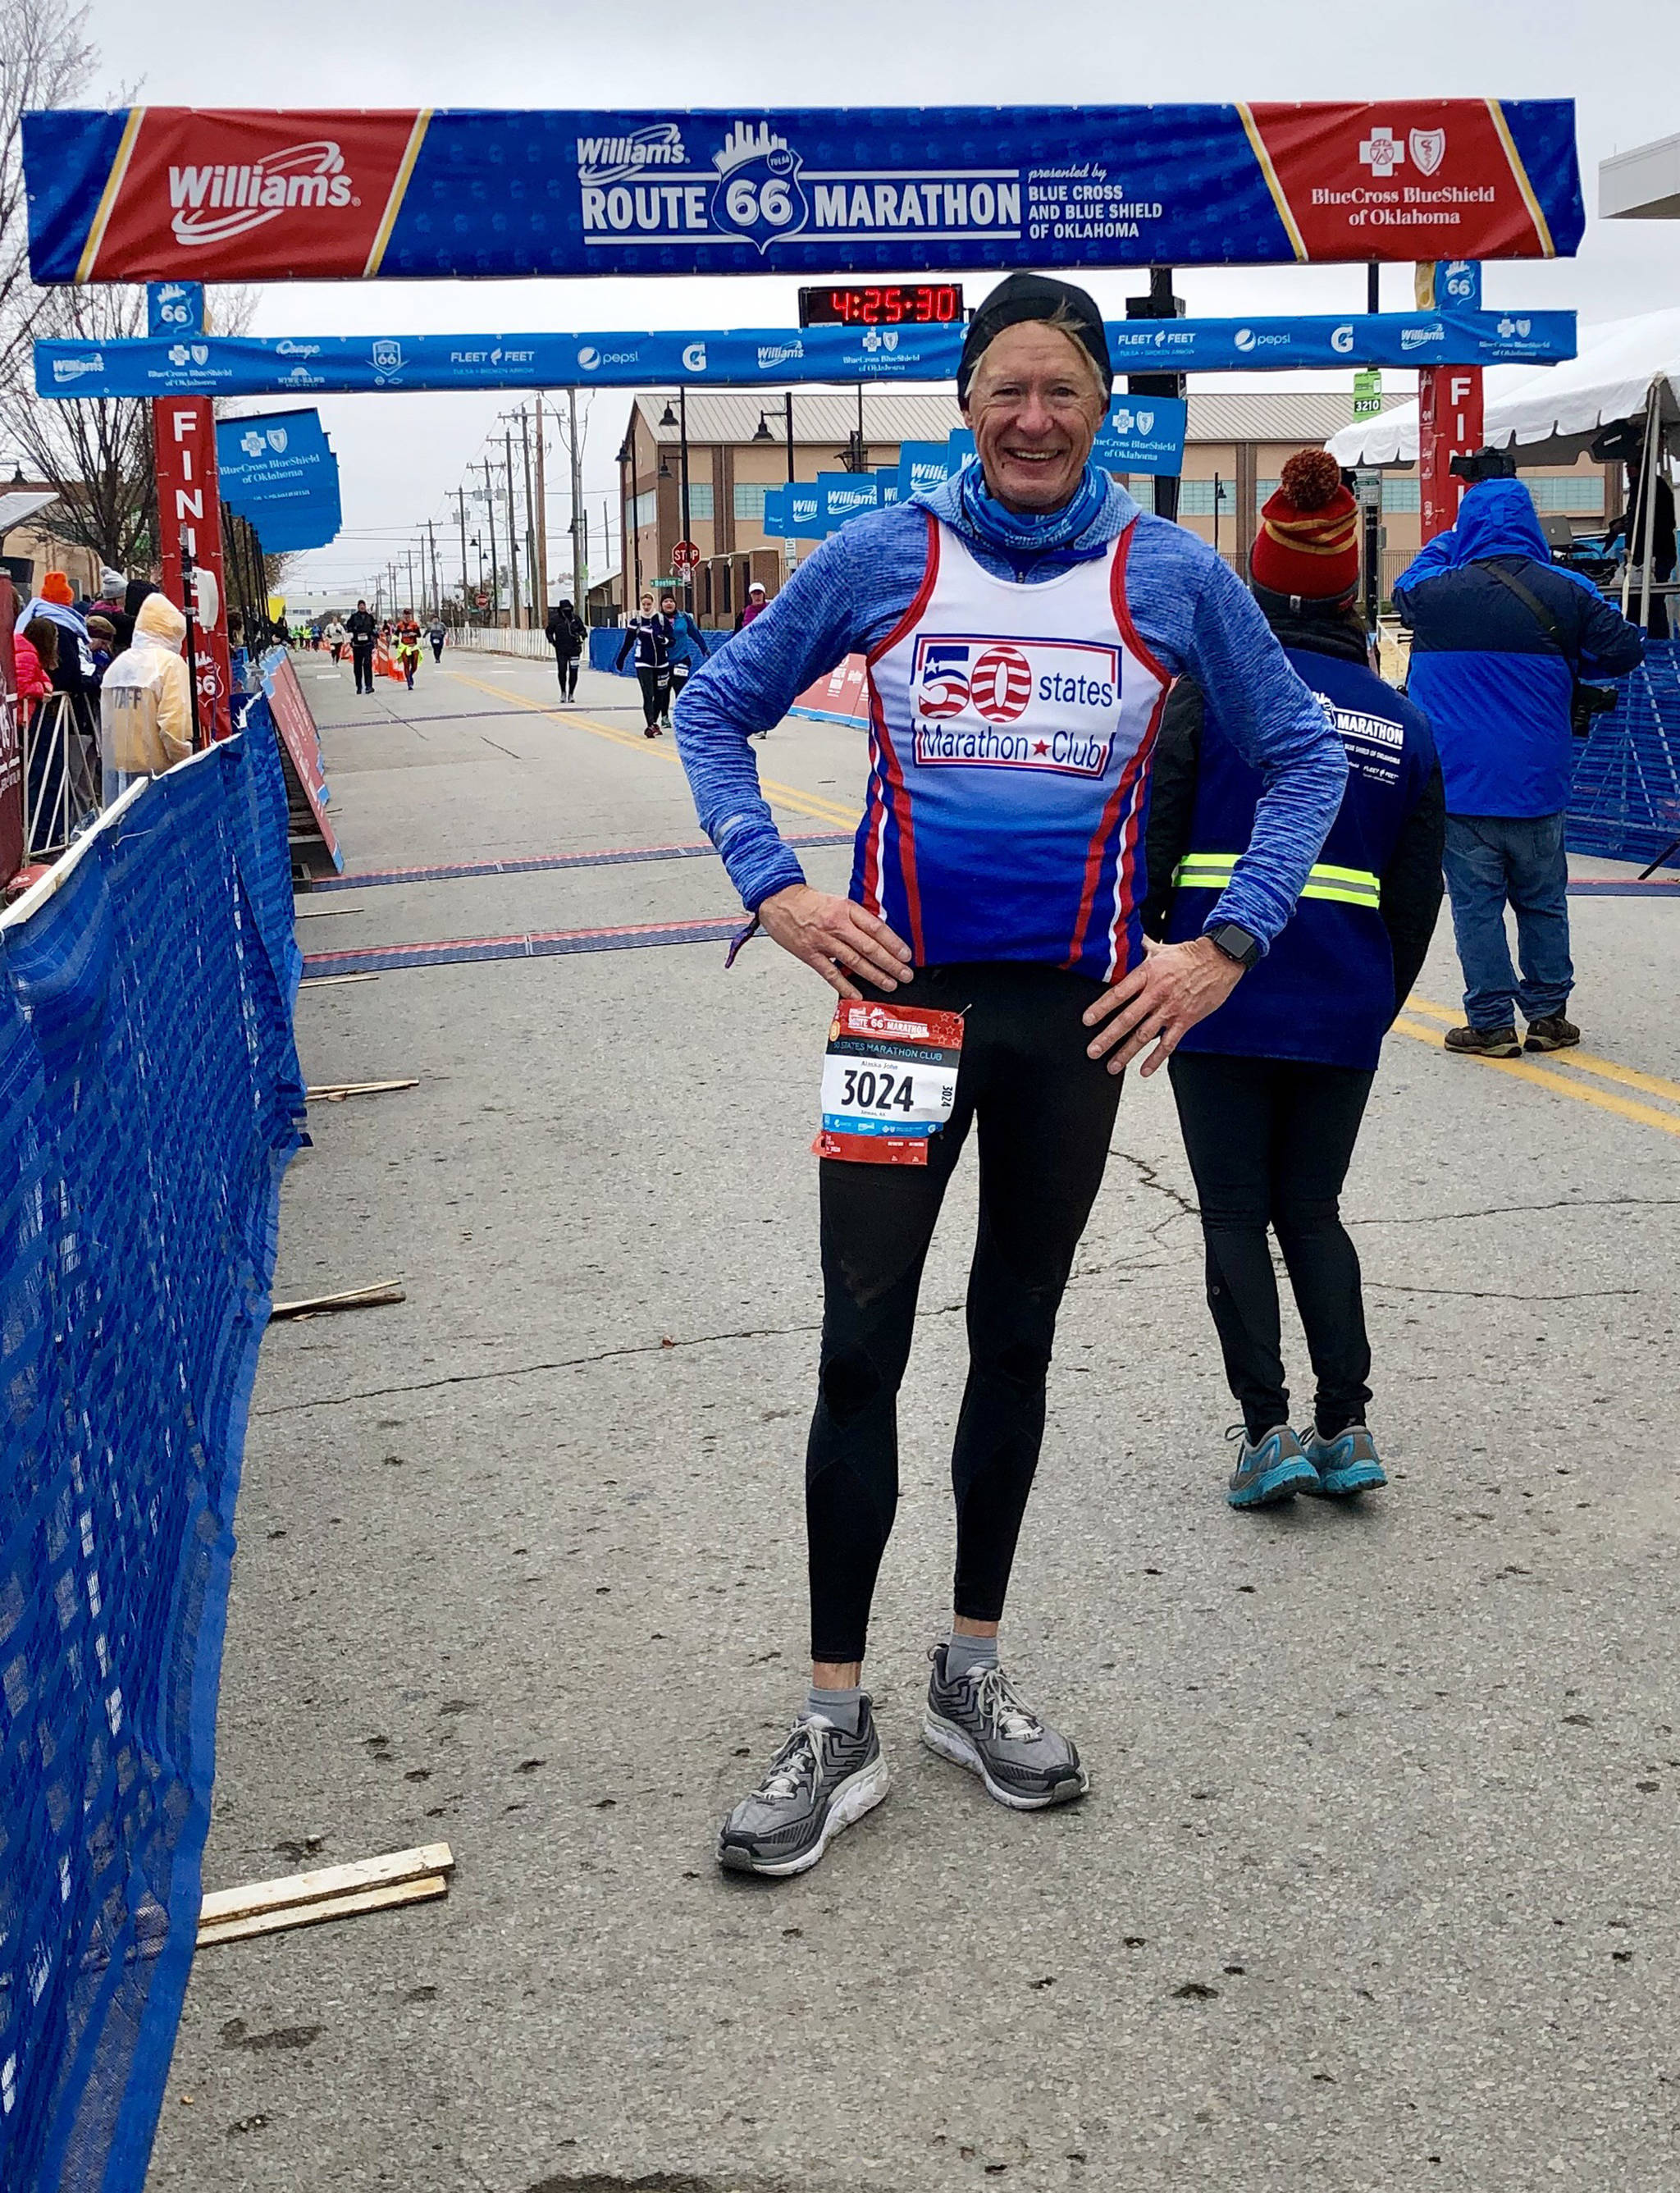 John Kern poses after completing the Williams Route 66 Marathon in Tulsa, Oklahoma, on Sunday, Nov. 18, 2018. (Courtesy Photo | John Kern)